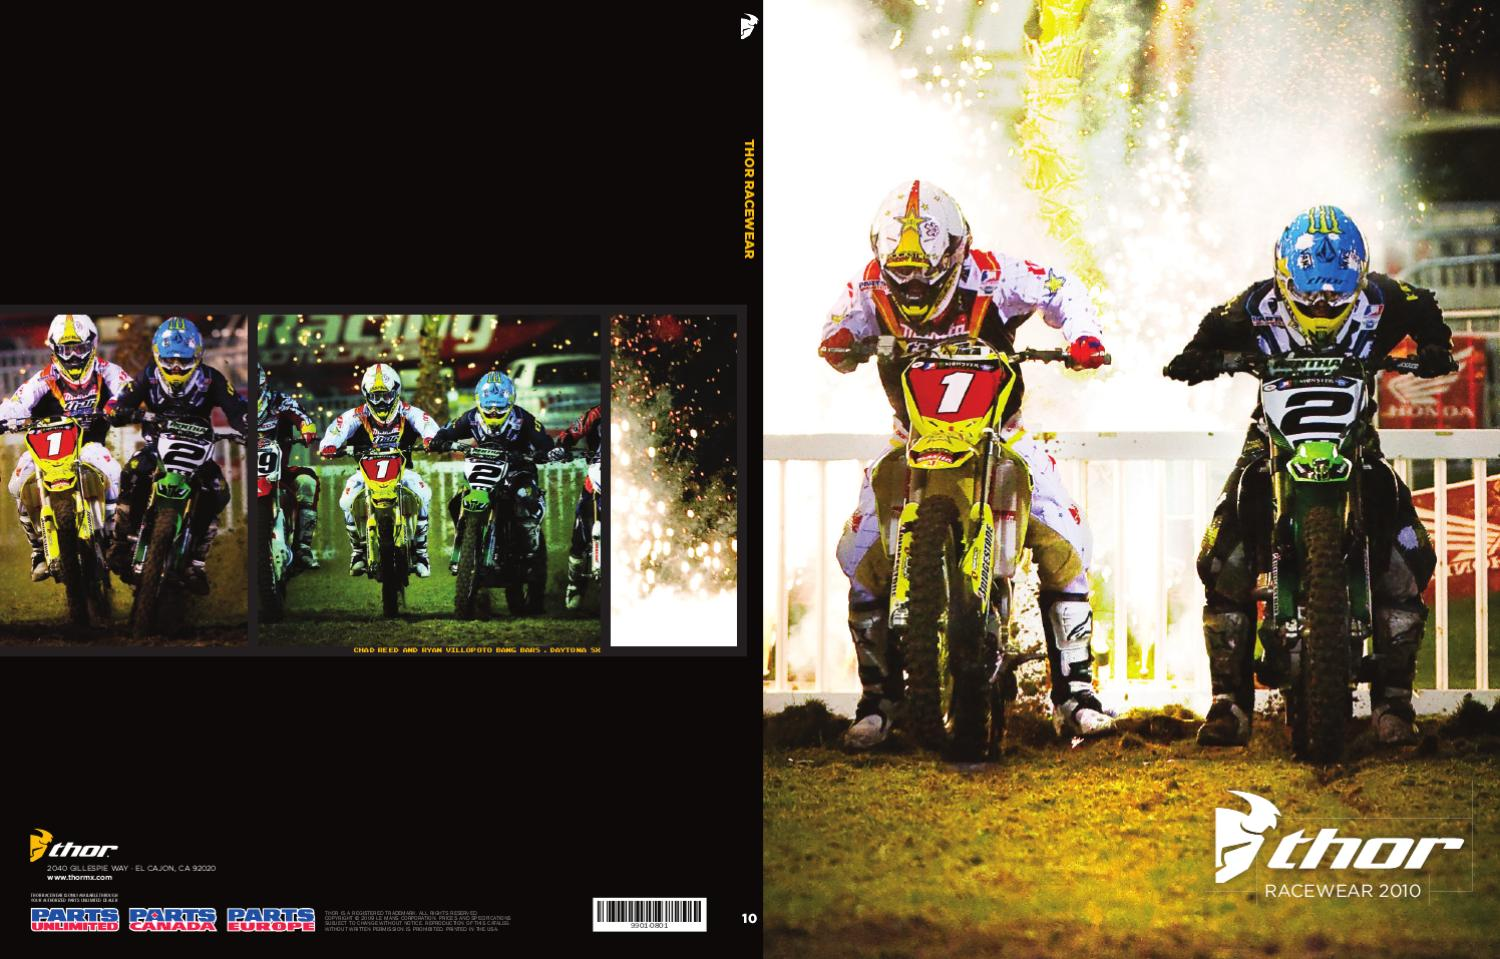 968d27de9 Catalogo THOR en MotoWorld by Pablo Guerrero - issuu